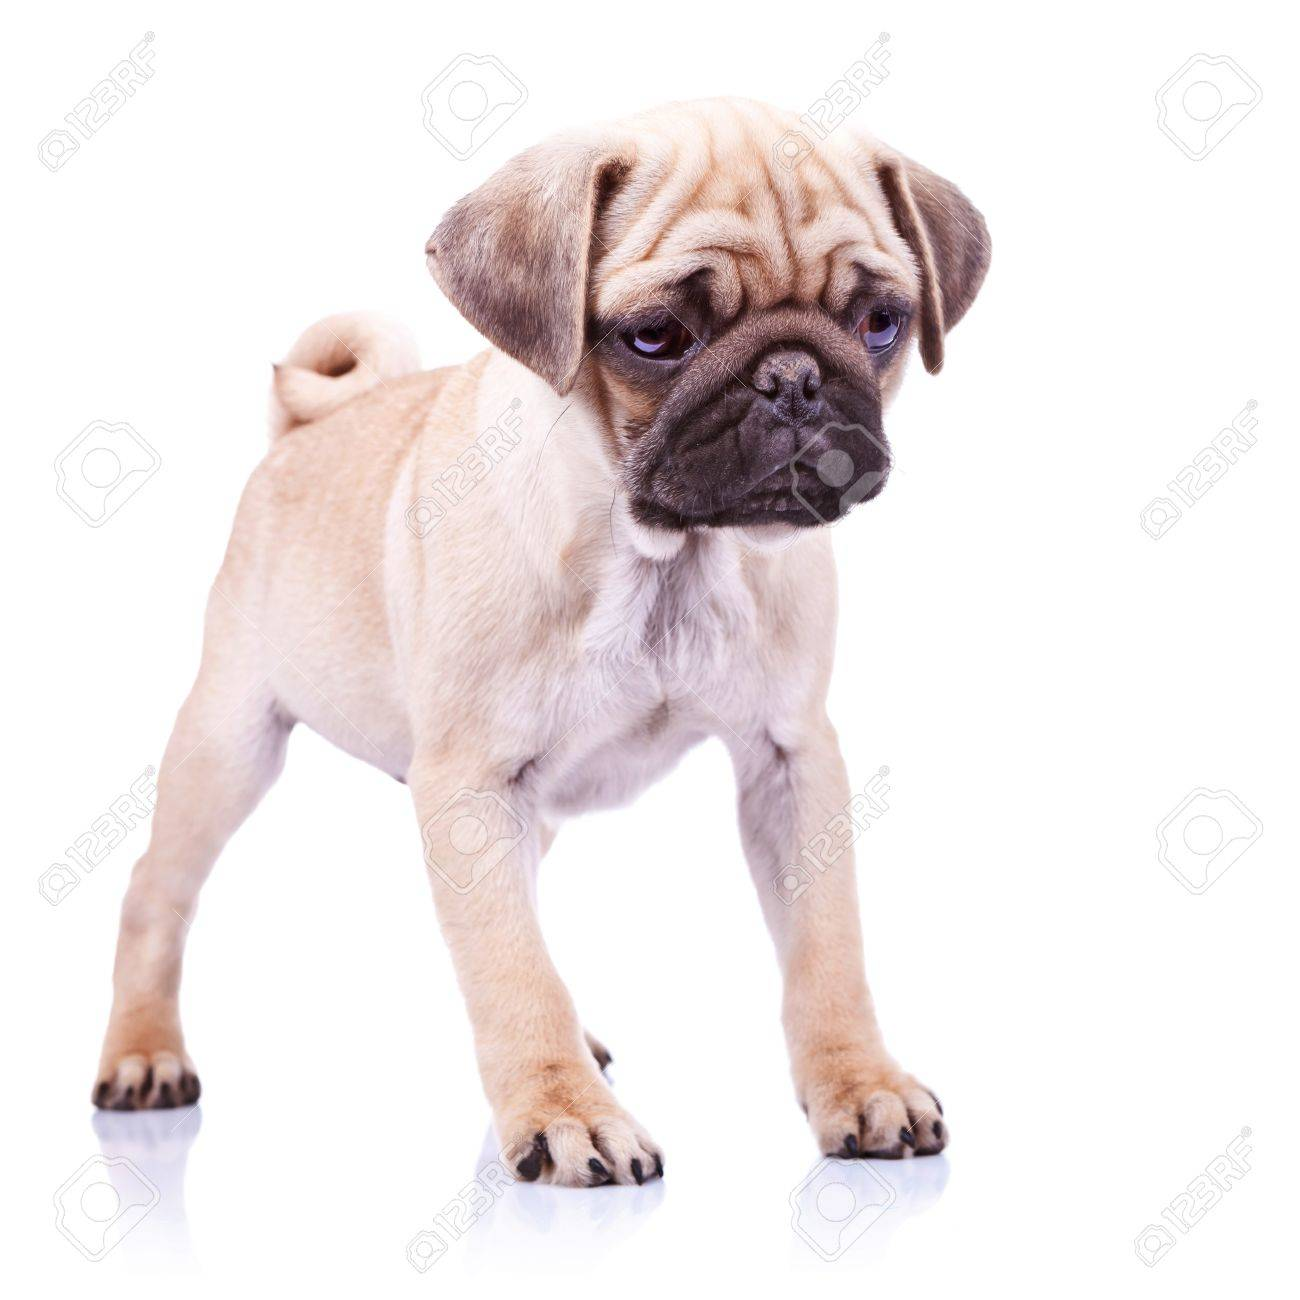 Cute Pug Puppy Dog Standing And Looking At Something On White